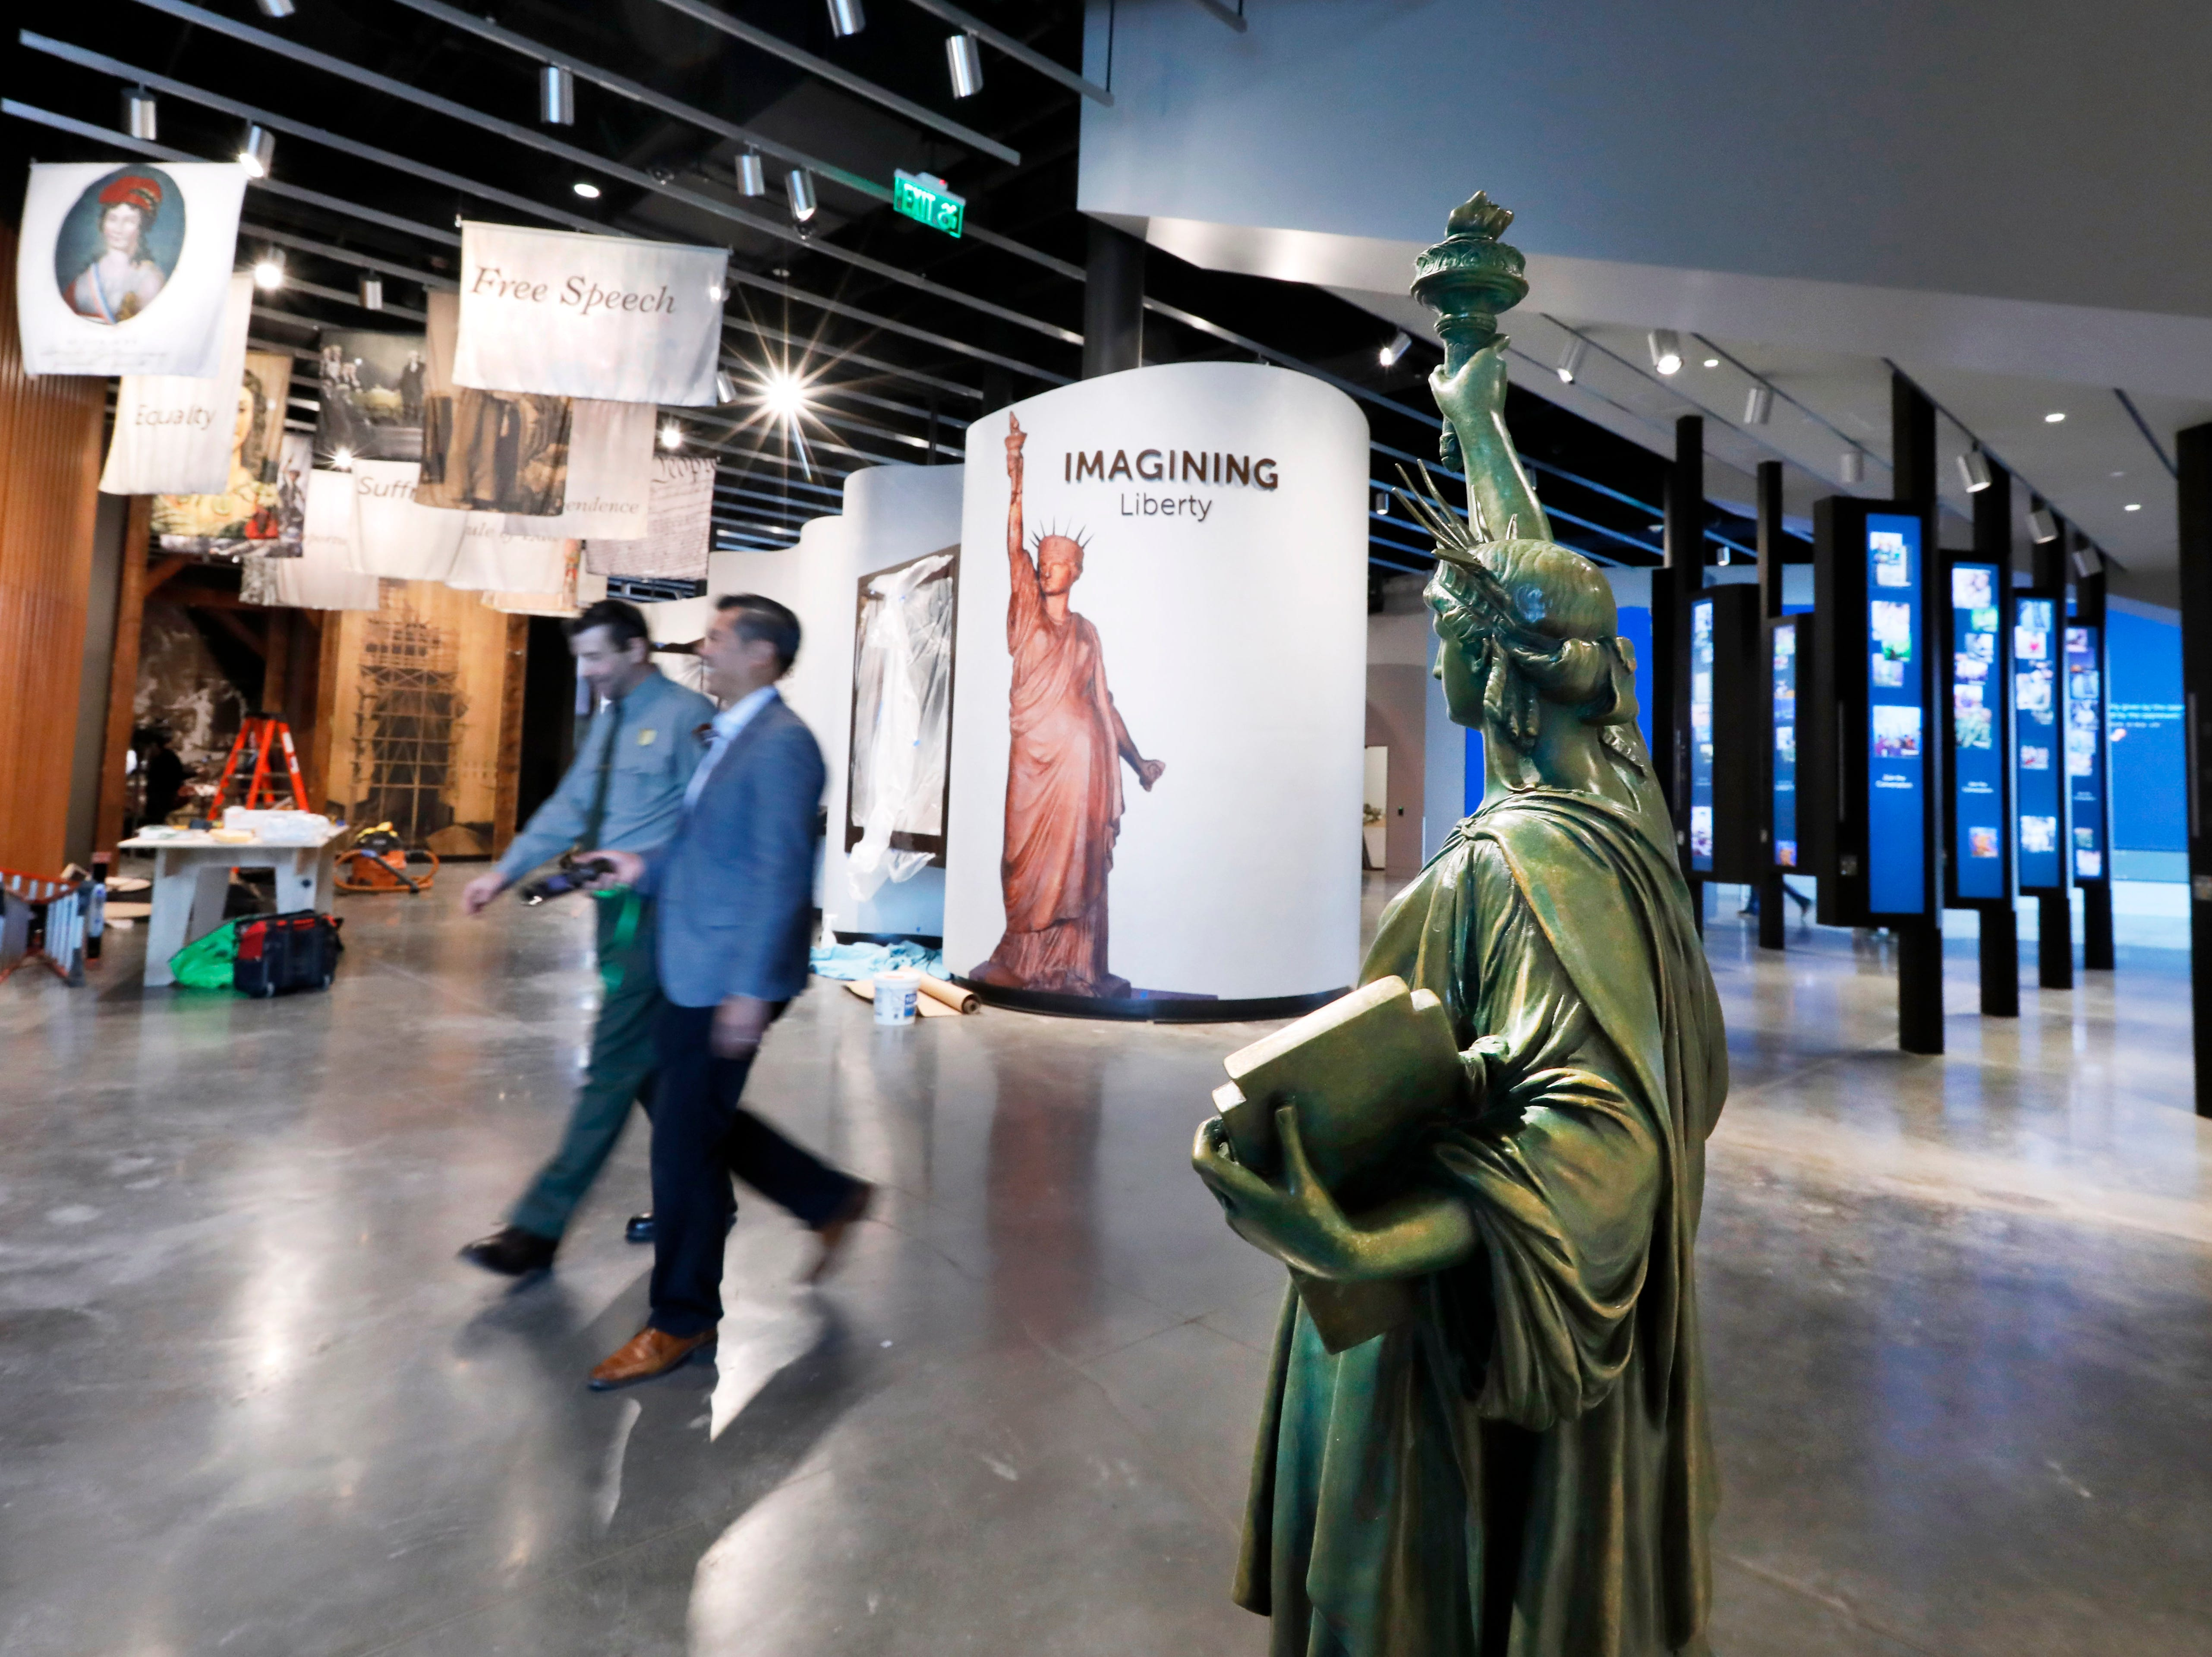 A miniature Statue of Liberty is among the artifacts displayed in the new museum on Liberty Island.